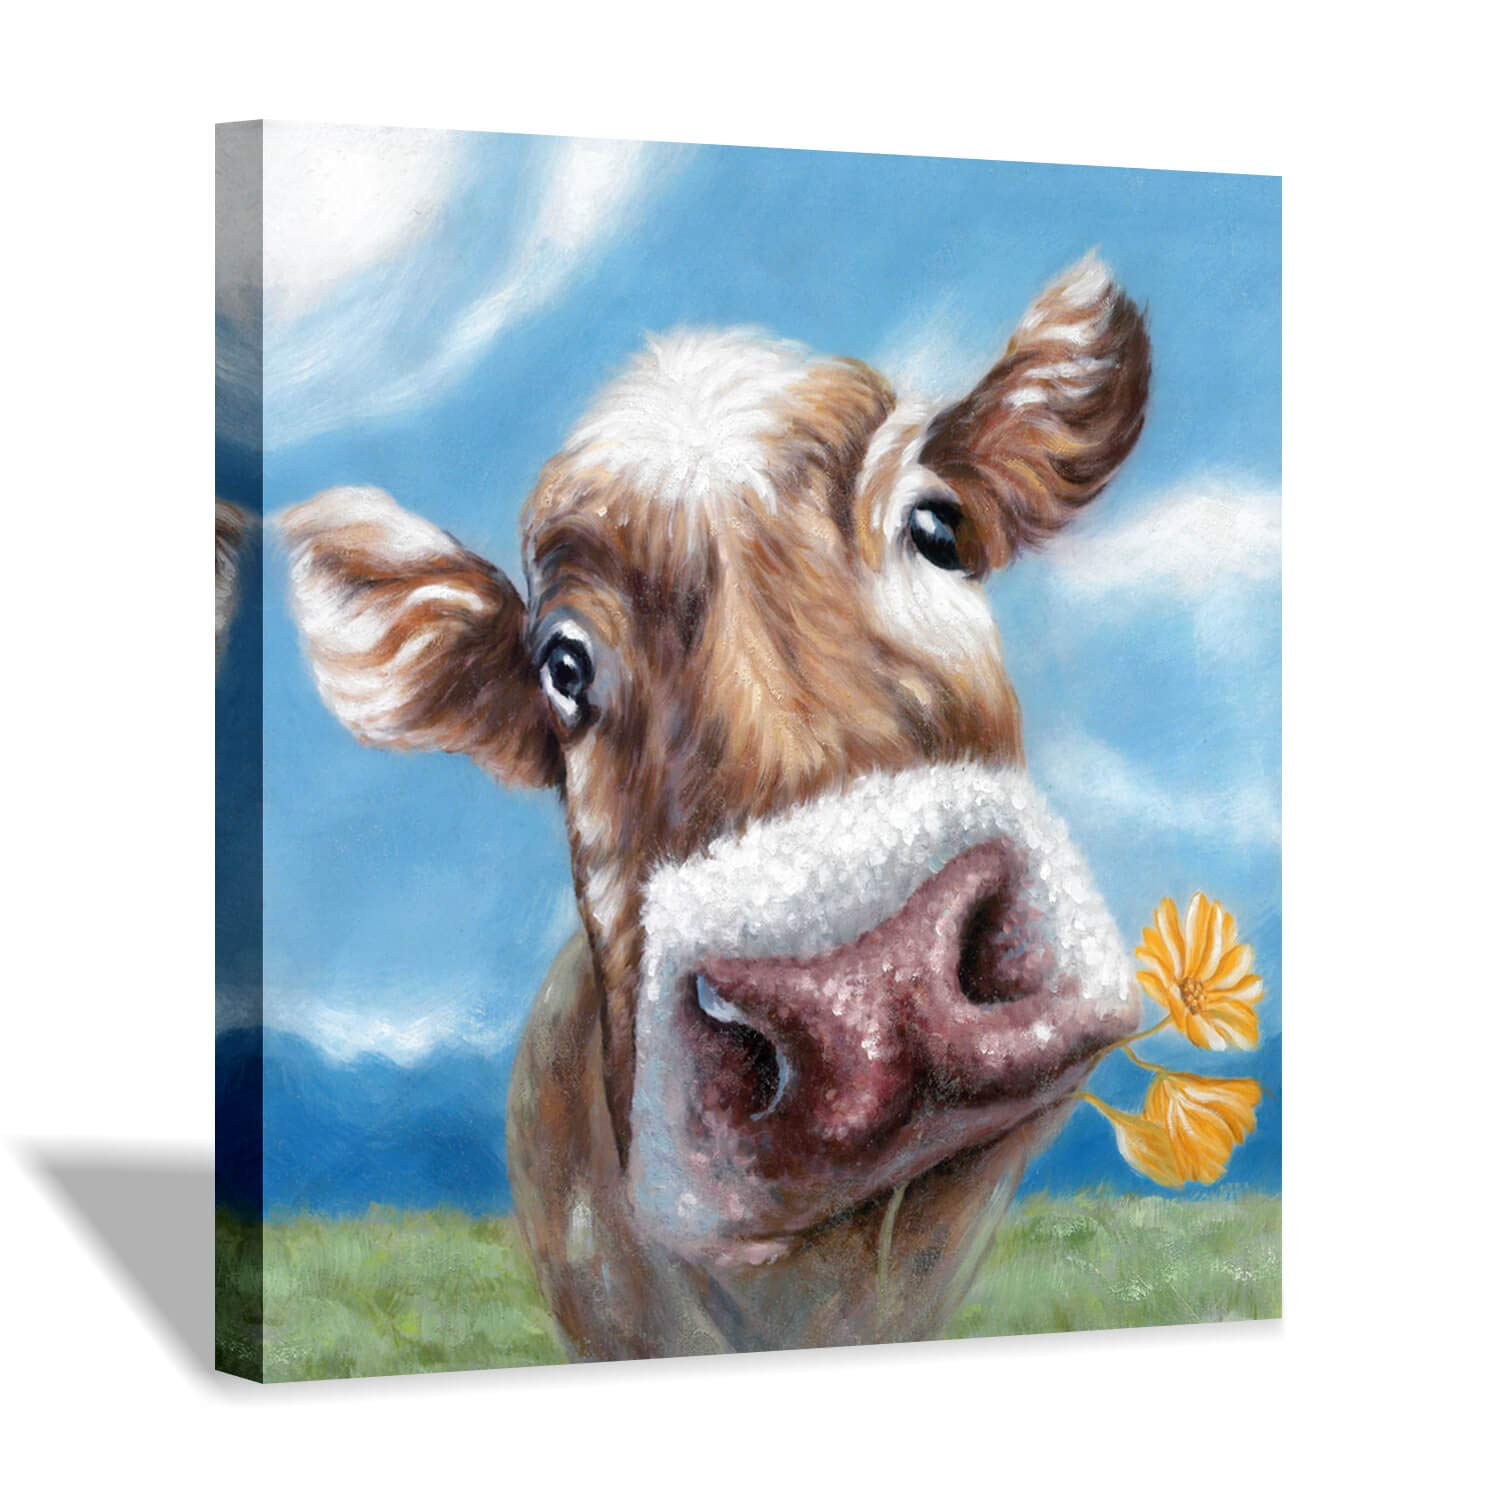 Hardy Gallery Animal Picture Cow Wall Art: Cute Cow Biting Flowers in The Mouth Canvas Painting for Living Room (24'' x 24'' x 1 Panel)